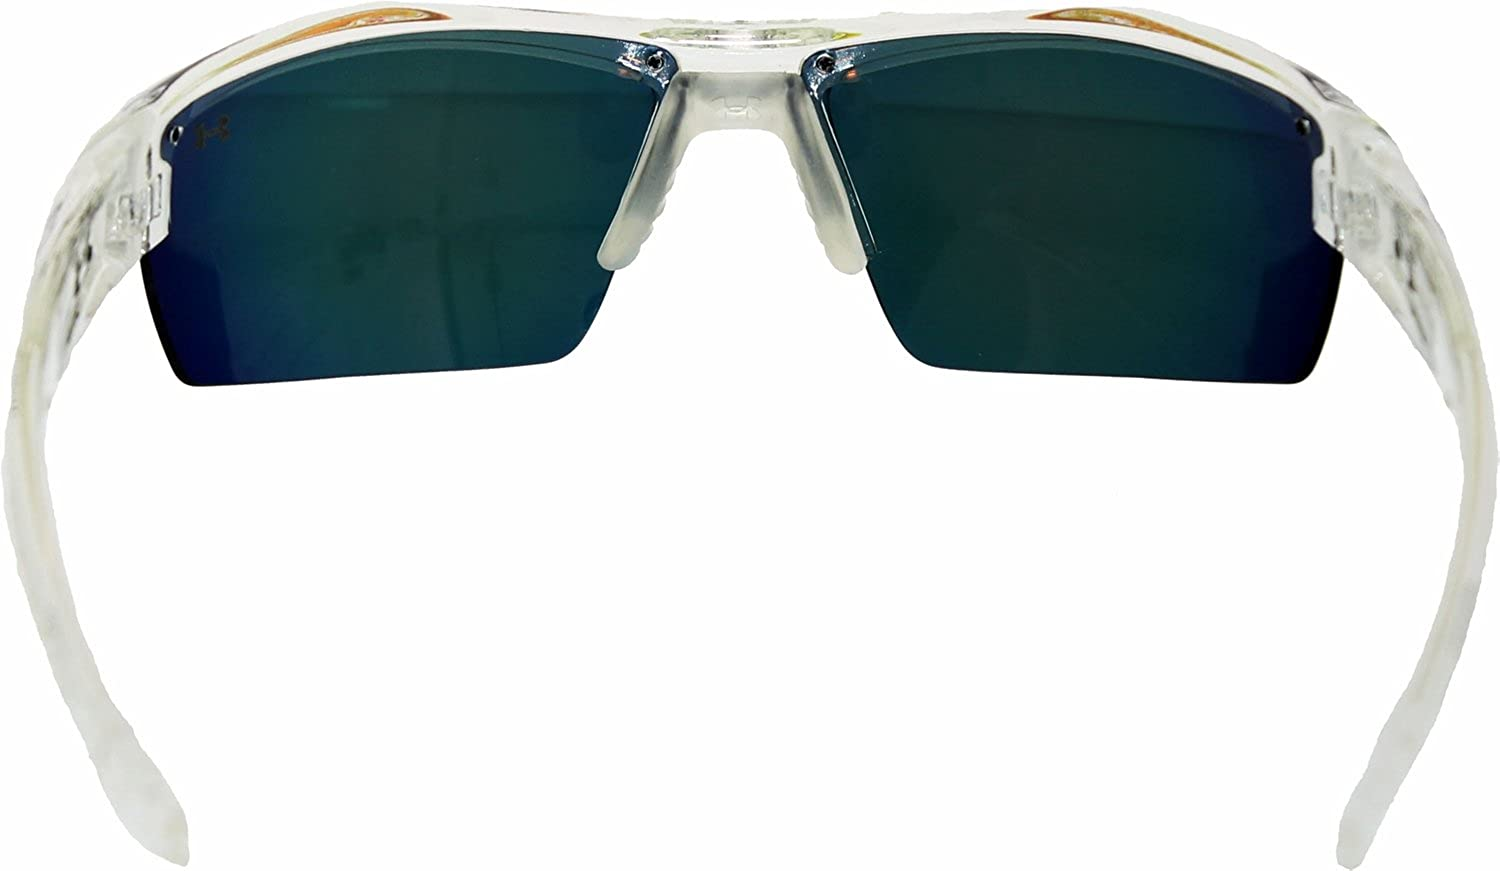 Amazon.com: Under Armour Igniter - Gafas de sol para hombre ...